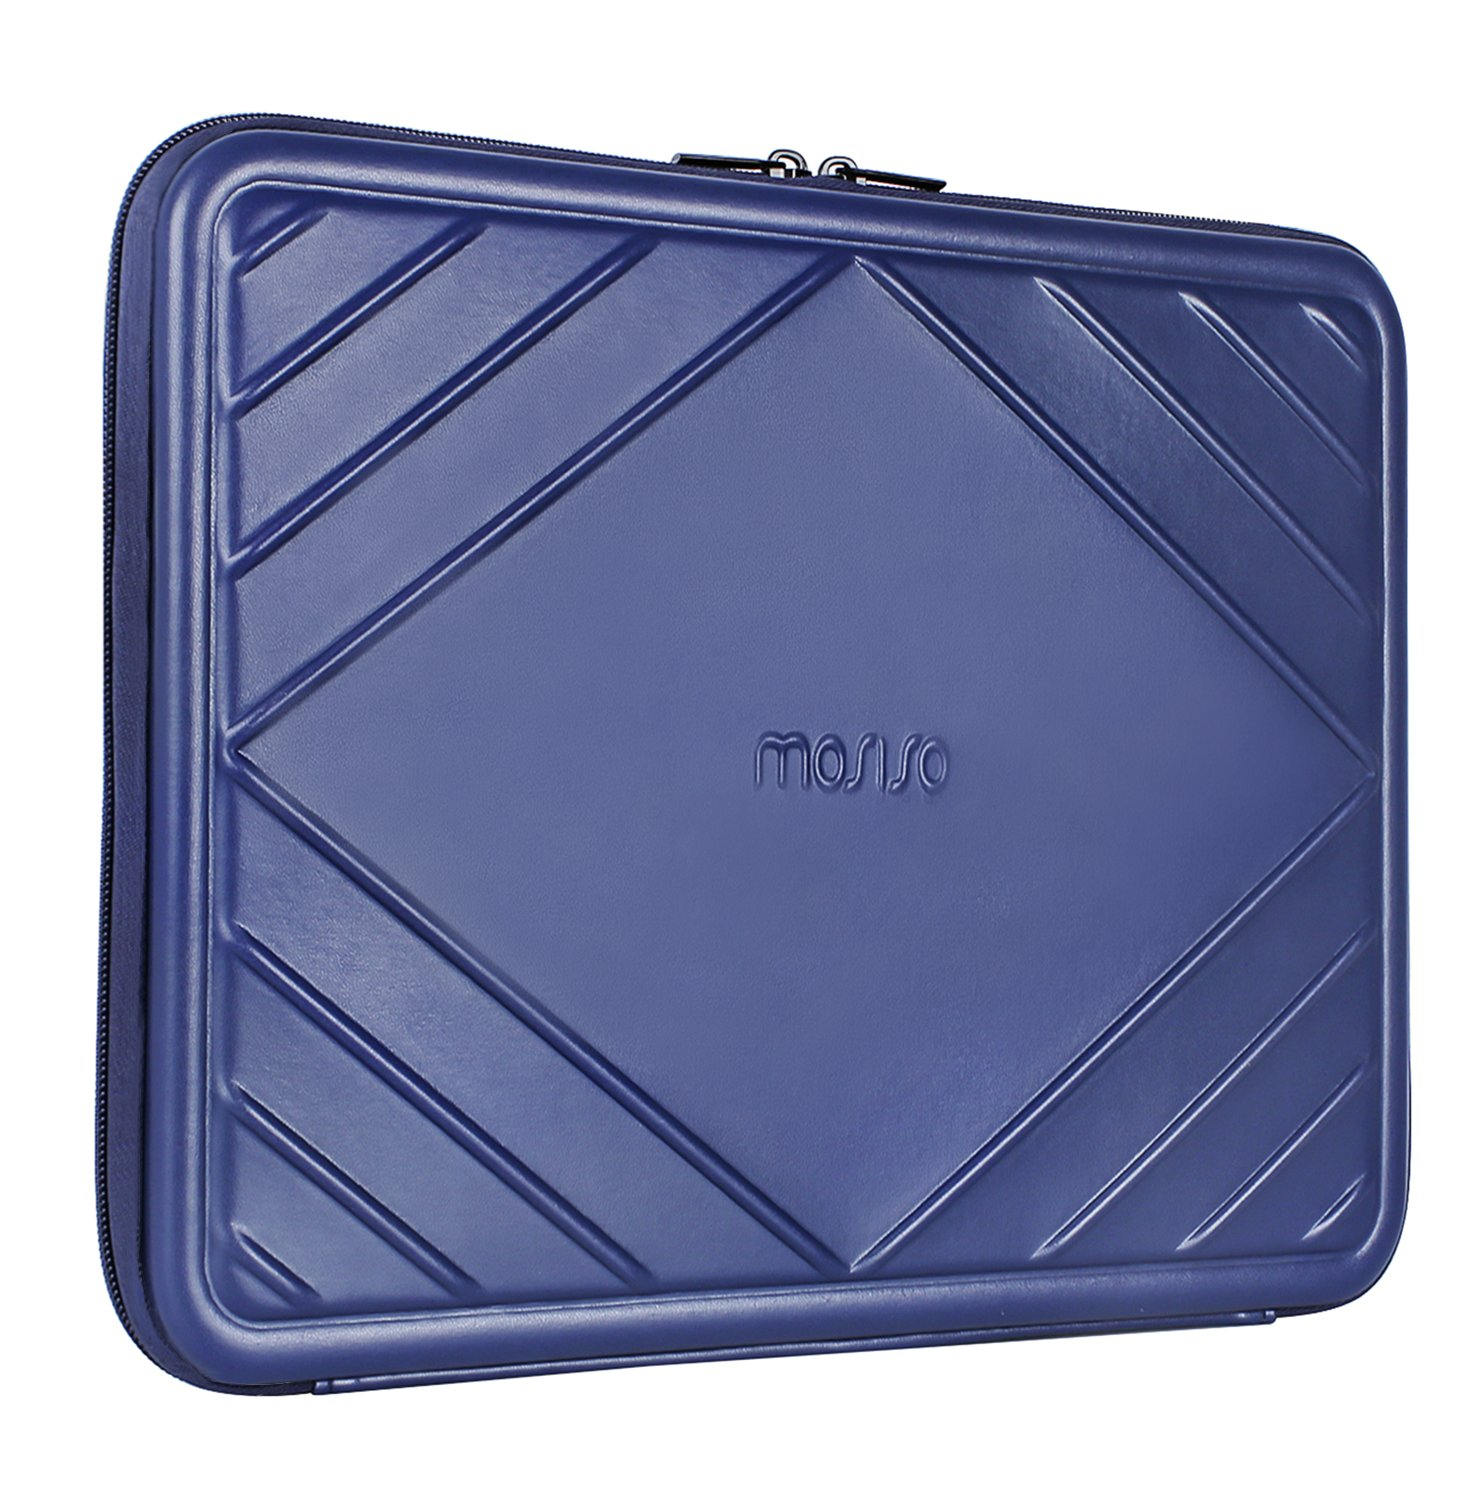 3a451ced1ecb MOSISO EVA with Premium PU Leather Hard Shell Laptop Sleeve Bag Compatible  13-13.3 Inch MacBook Pro ...